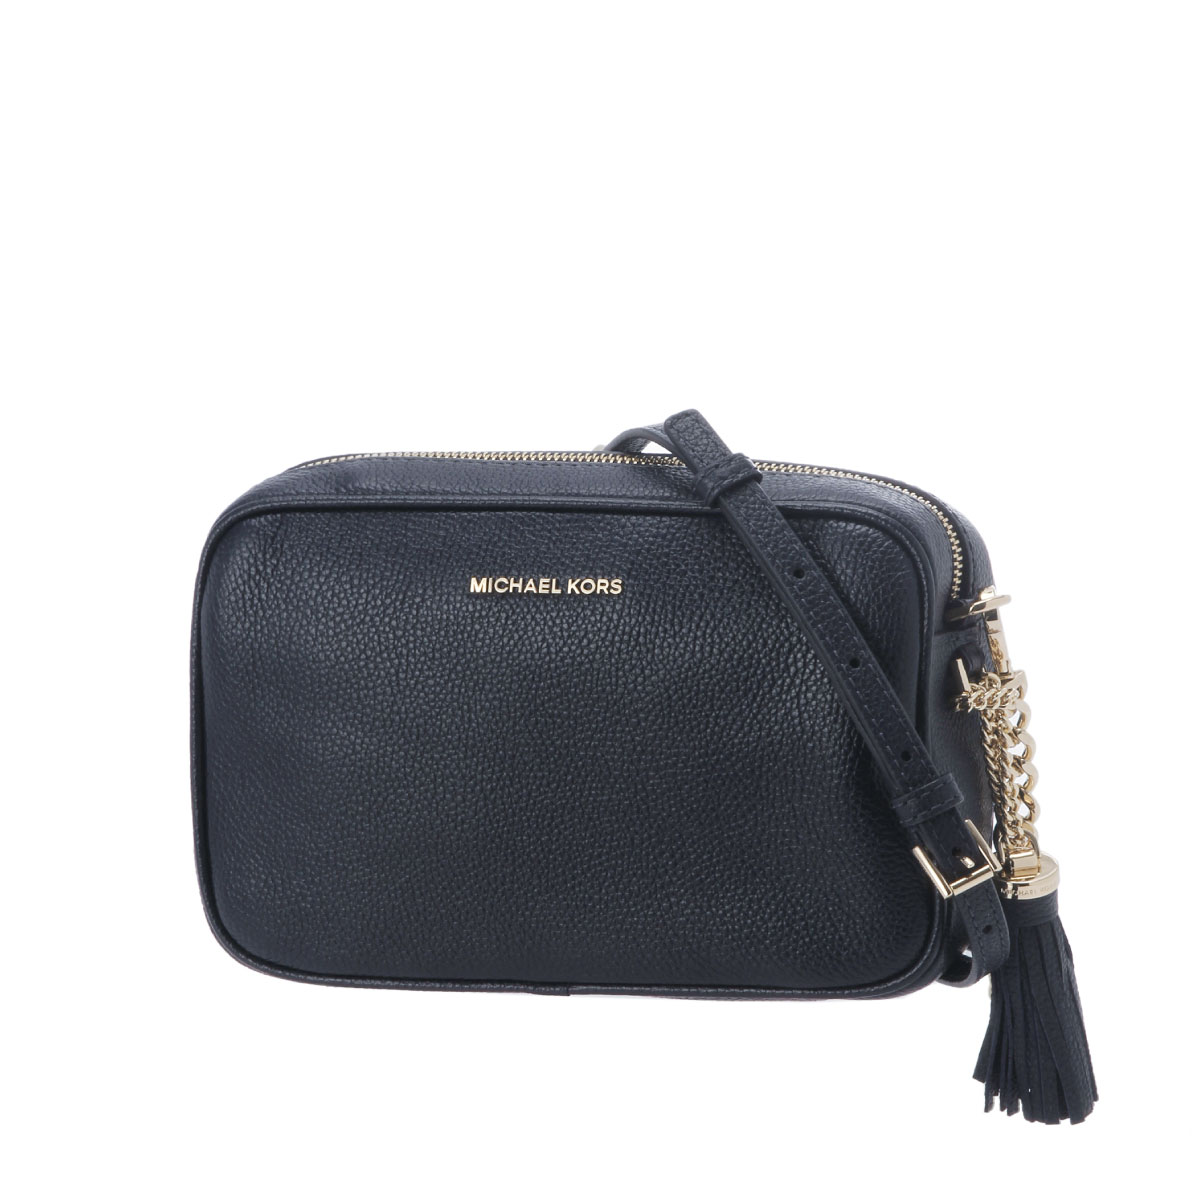 Michael Kors MICHAEL KORS bag lady 32F7GGNM8L 414 shoulder clutch bag  medium GINNY Ginie ADMIRAL dark blue belonging to 8e320a5ede62d